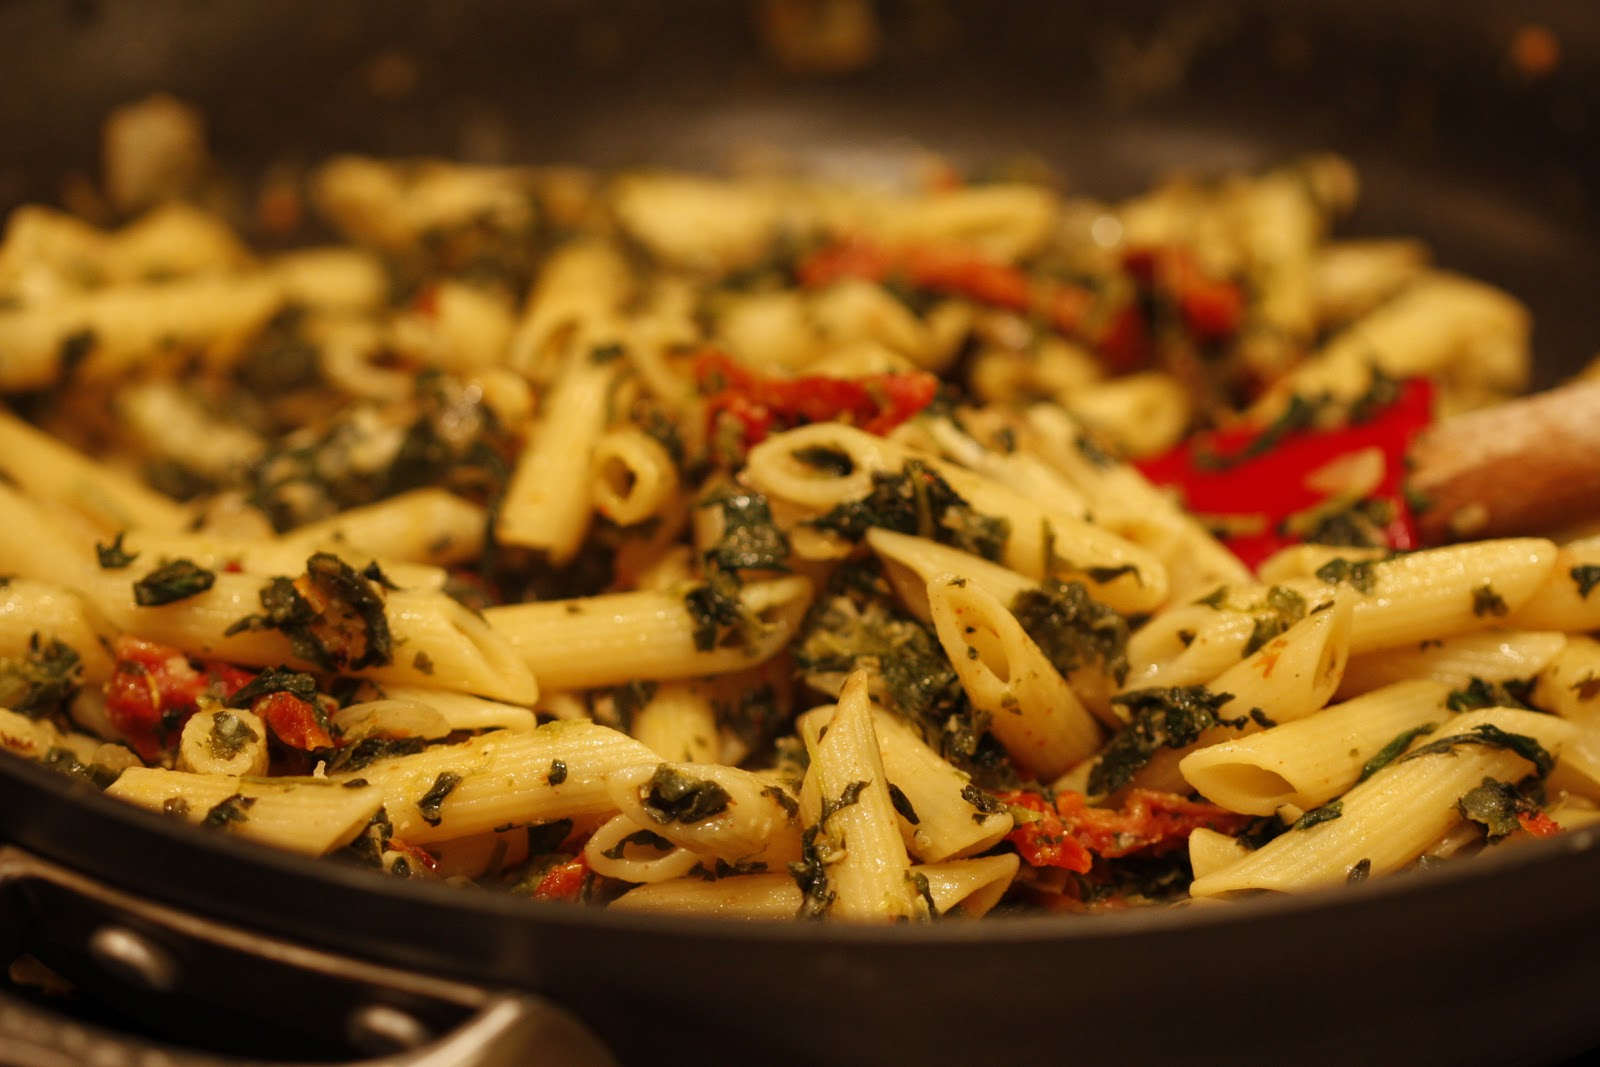 Designer Bakery: Spinach and Sun-dried Tomato Pasta